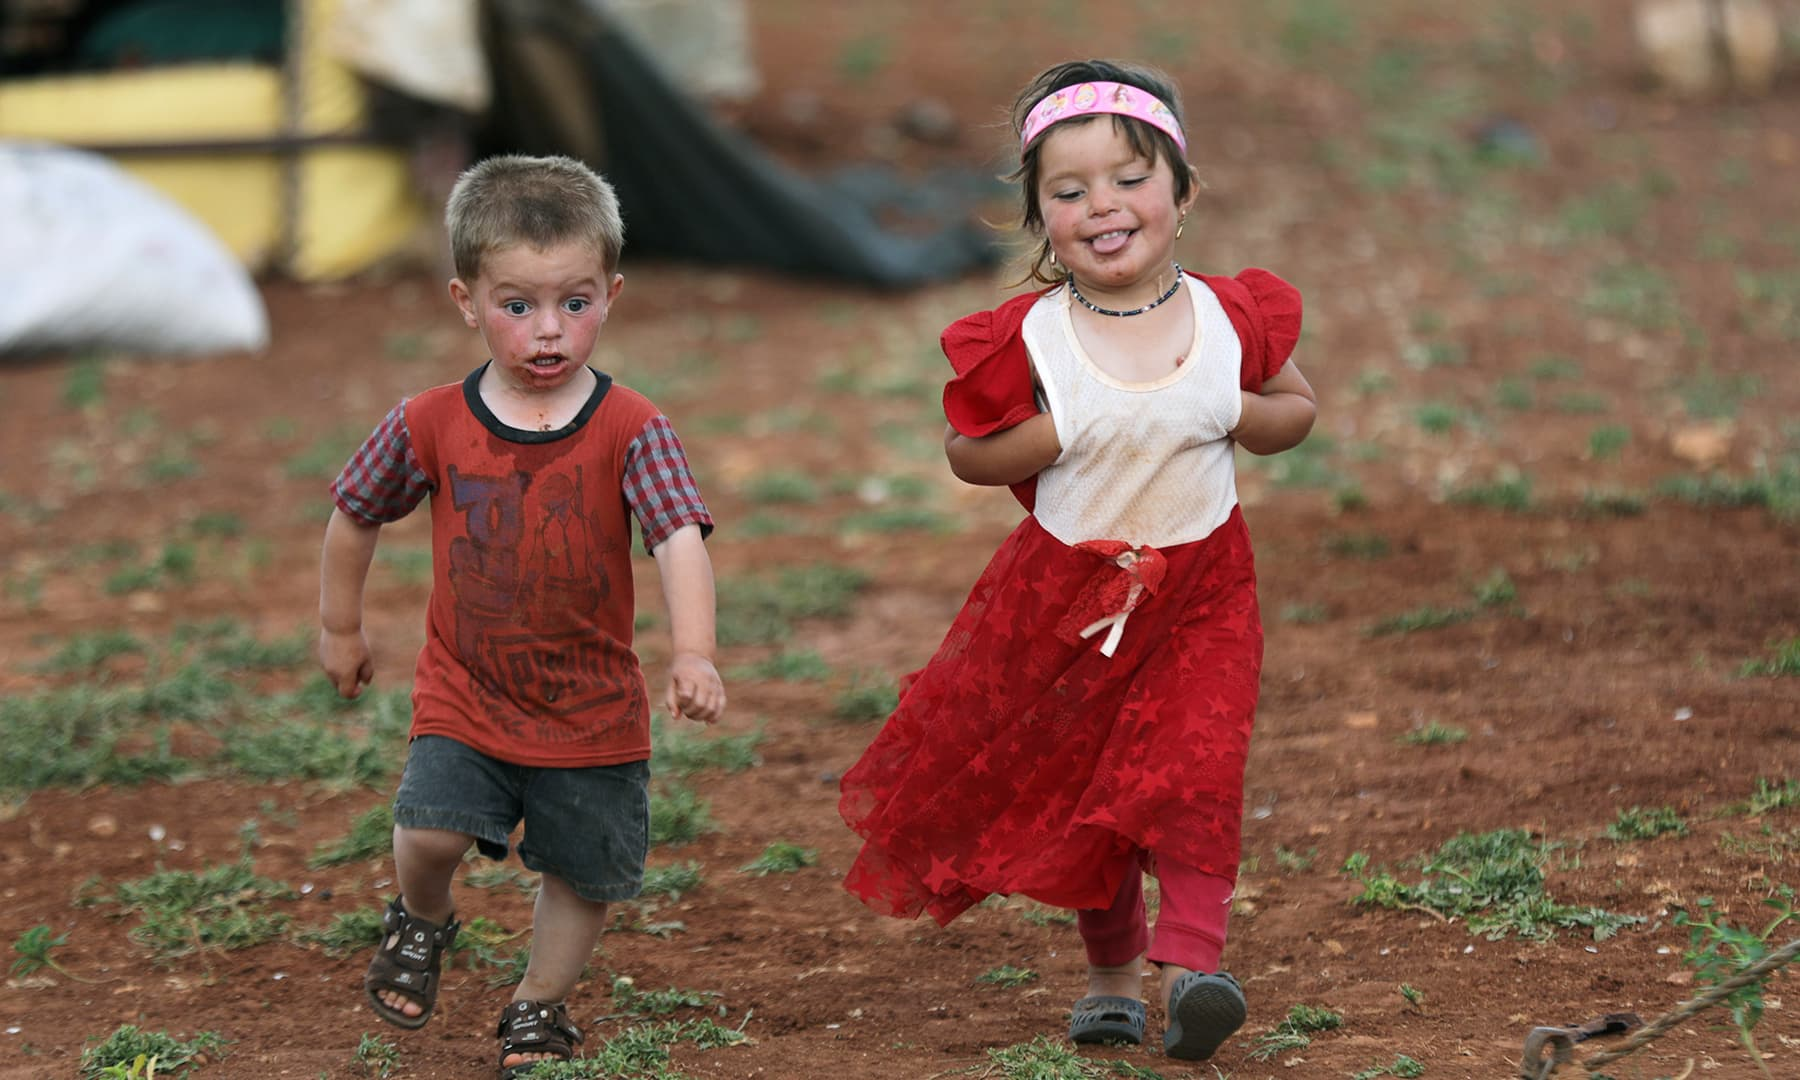 A displaced Syrian refugee girl runs next to a boy during the first day of Eidul Fitr, in an olive grove at the north of Idlib Countryside, Syria on June 4. — Reuters